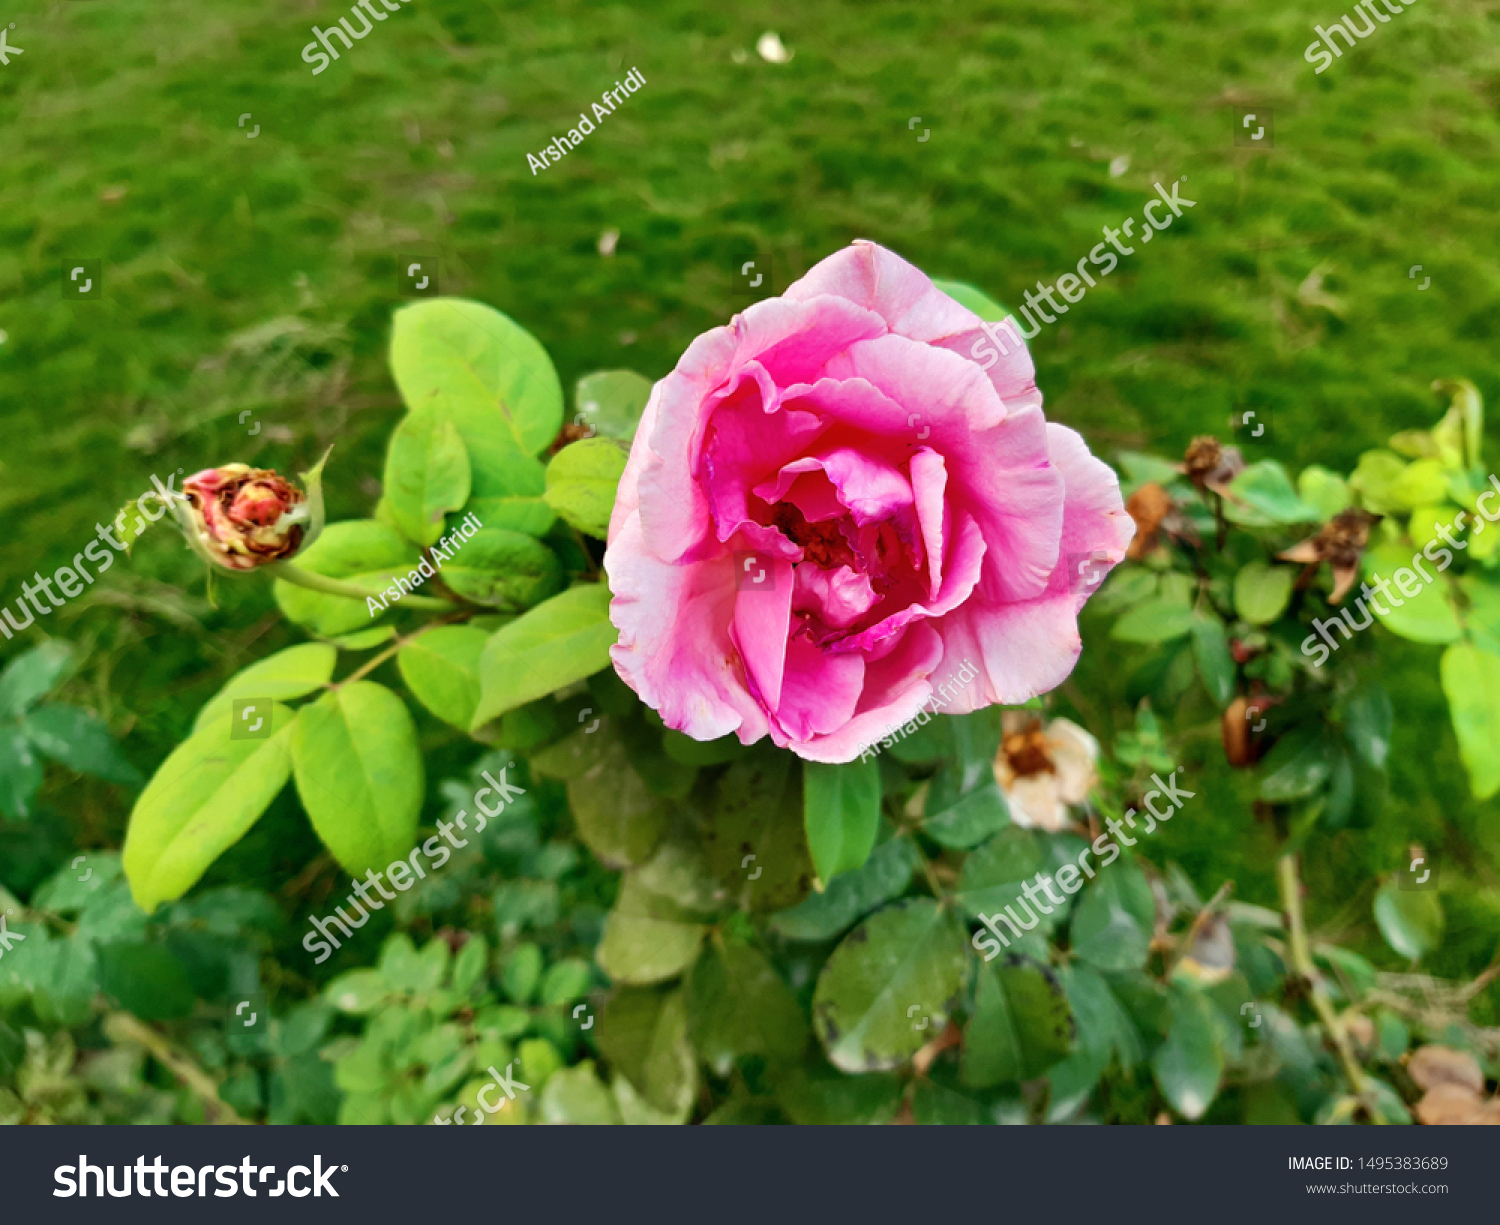 Flowers Most Beautiful Creation God Stock Photo Edit Now 1495383689